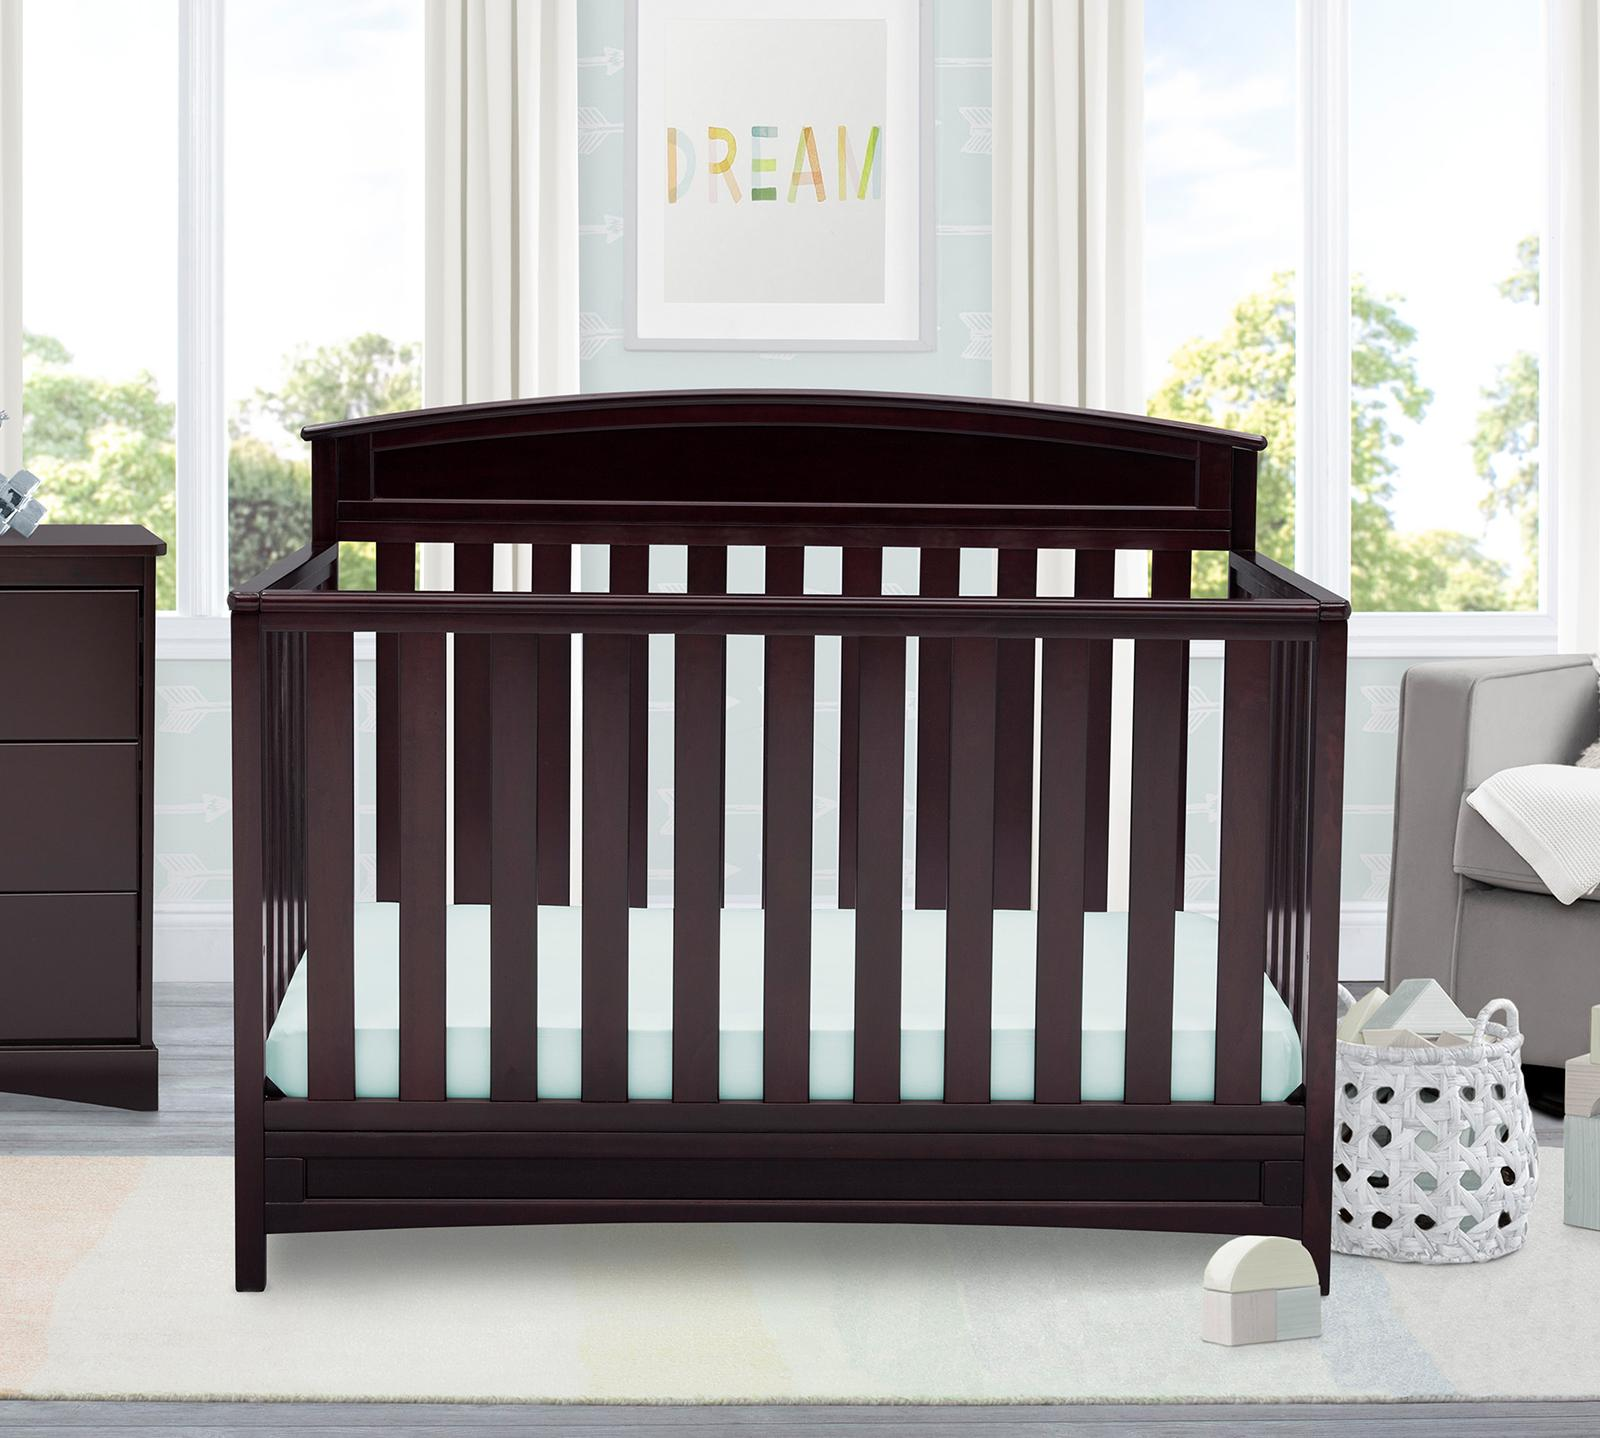 Shop Baby Kids Beds Cribs Mattresses Furniture Mattress Firm